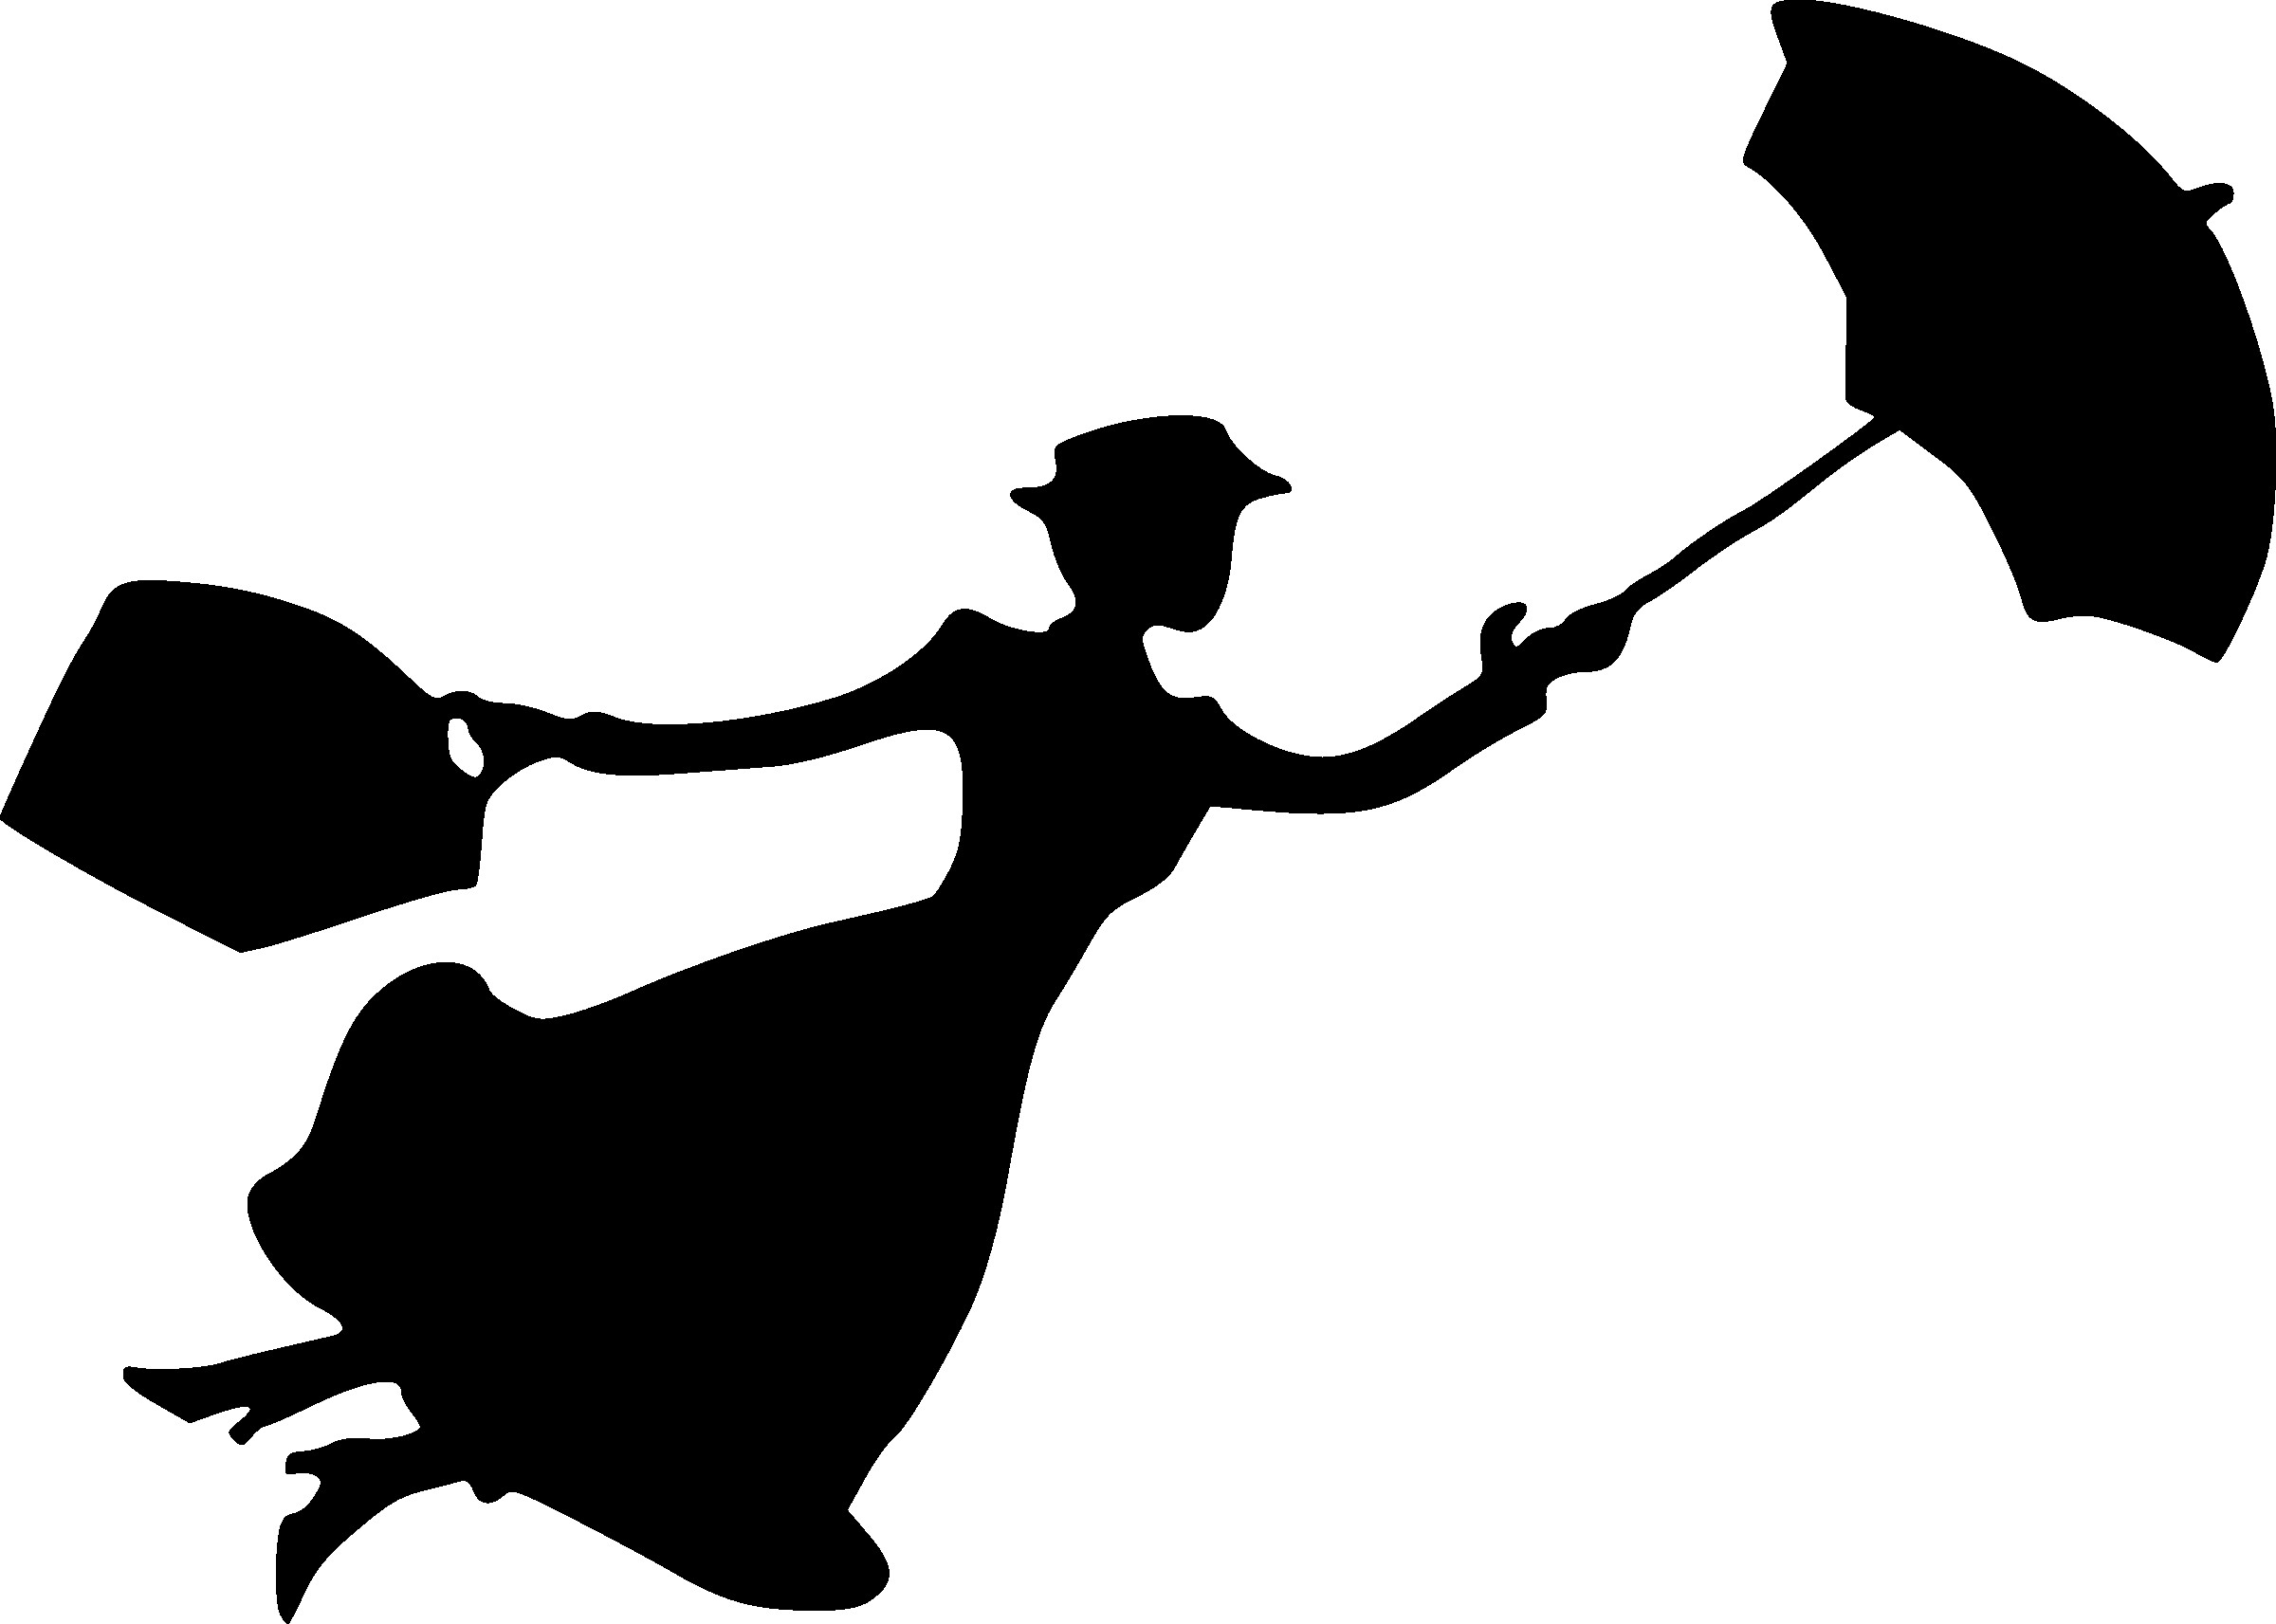 mary poppins outline 735 best images about disney svg on pinterest poppins outline mary